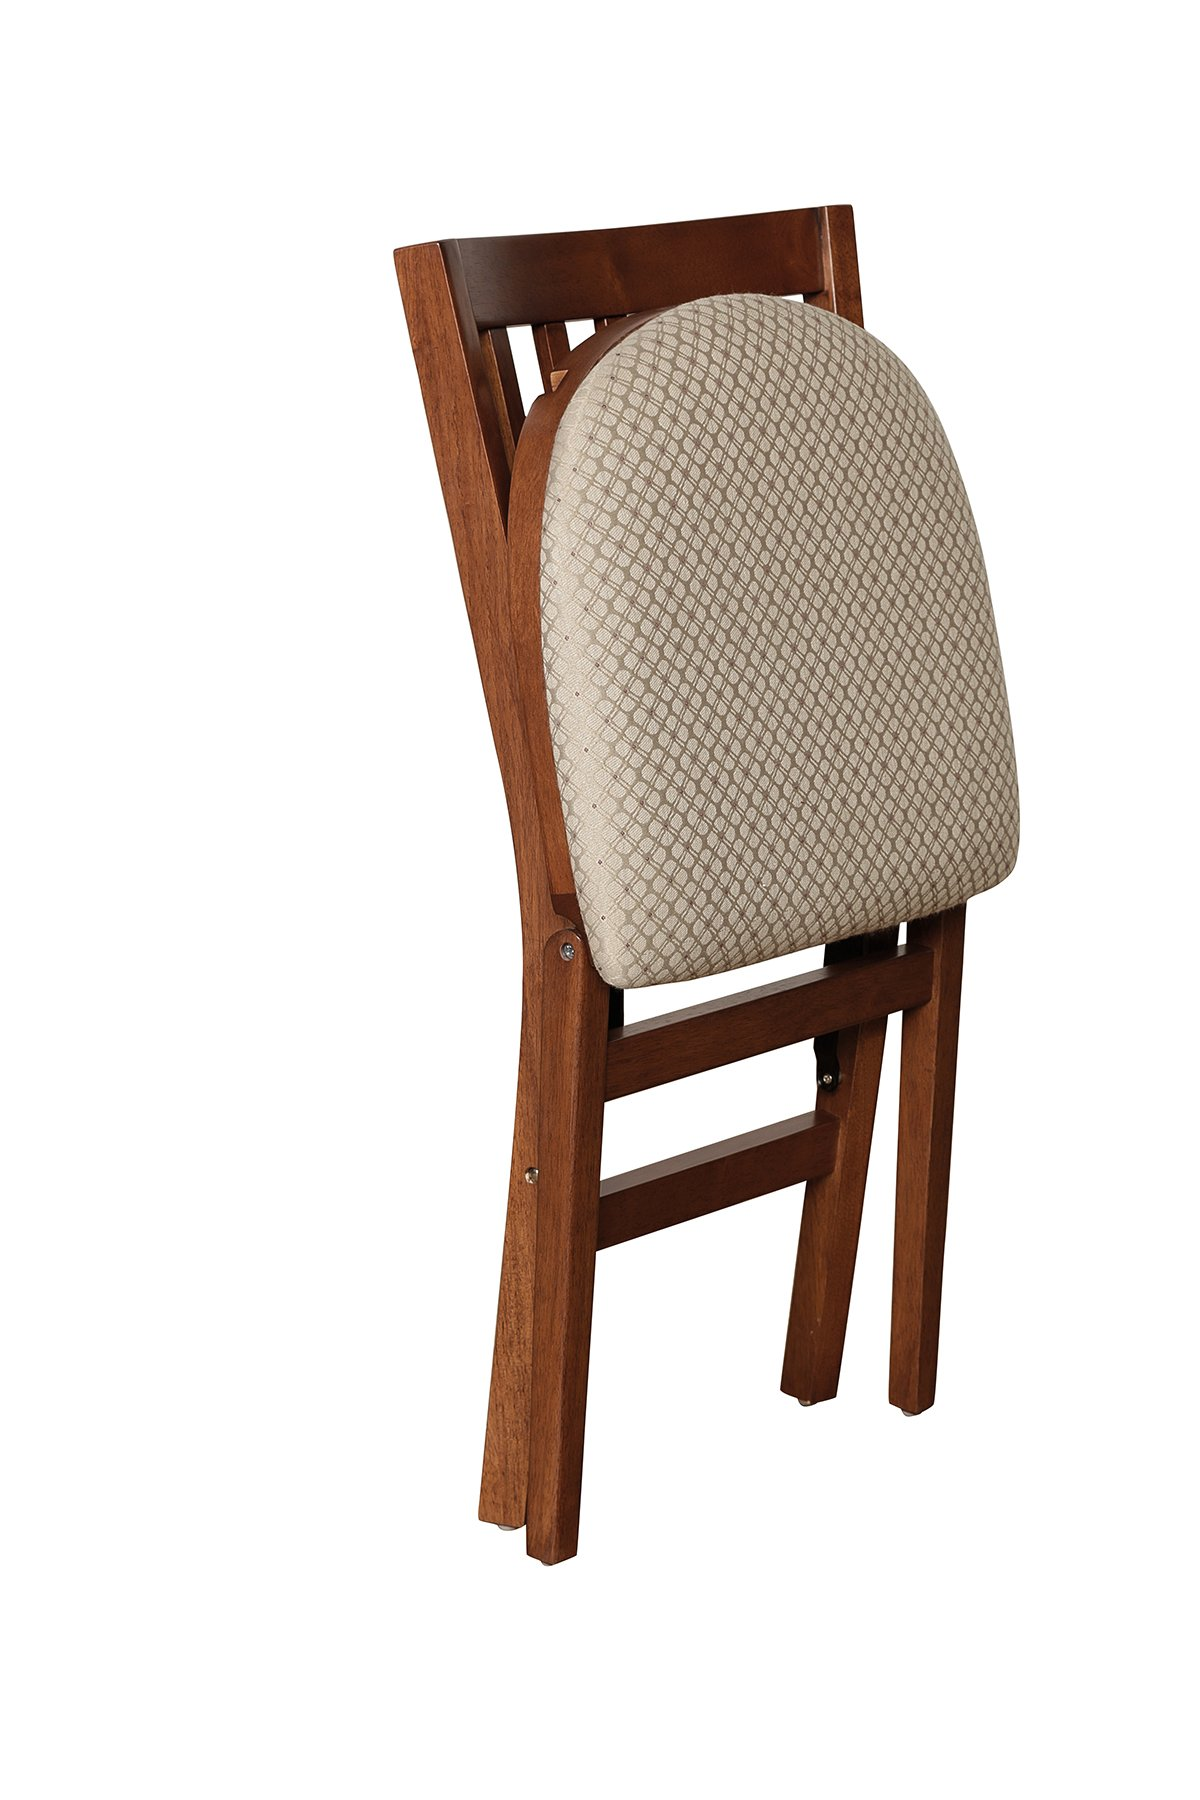 Stakmore School House Folding Chair Finish, Set of 2, Cherry by MECO (Image #2)